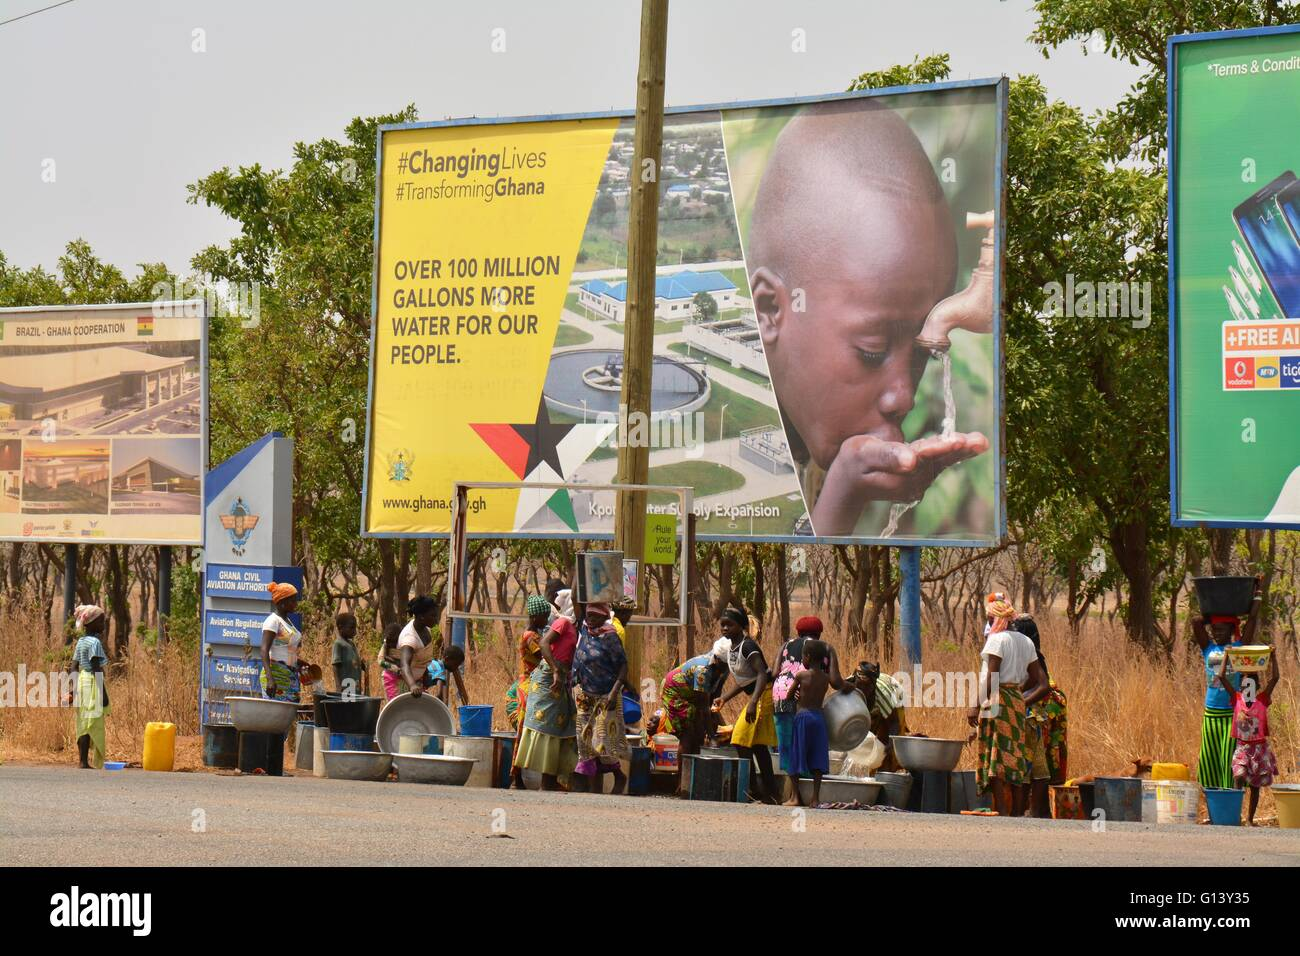 Fetching water under an 'More Water' for our people bill board, Ghana, Tamale - Stock Image